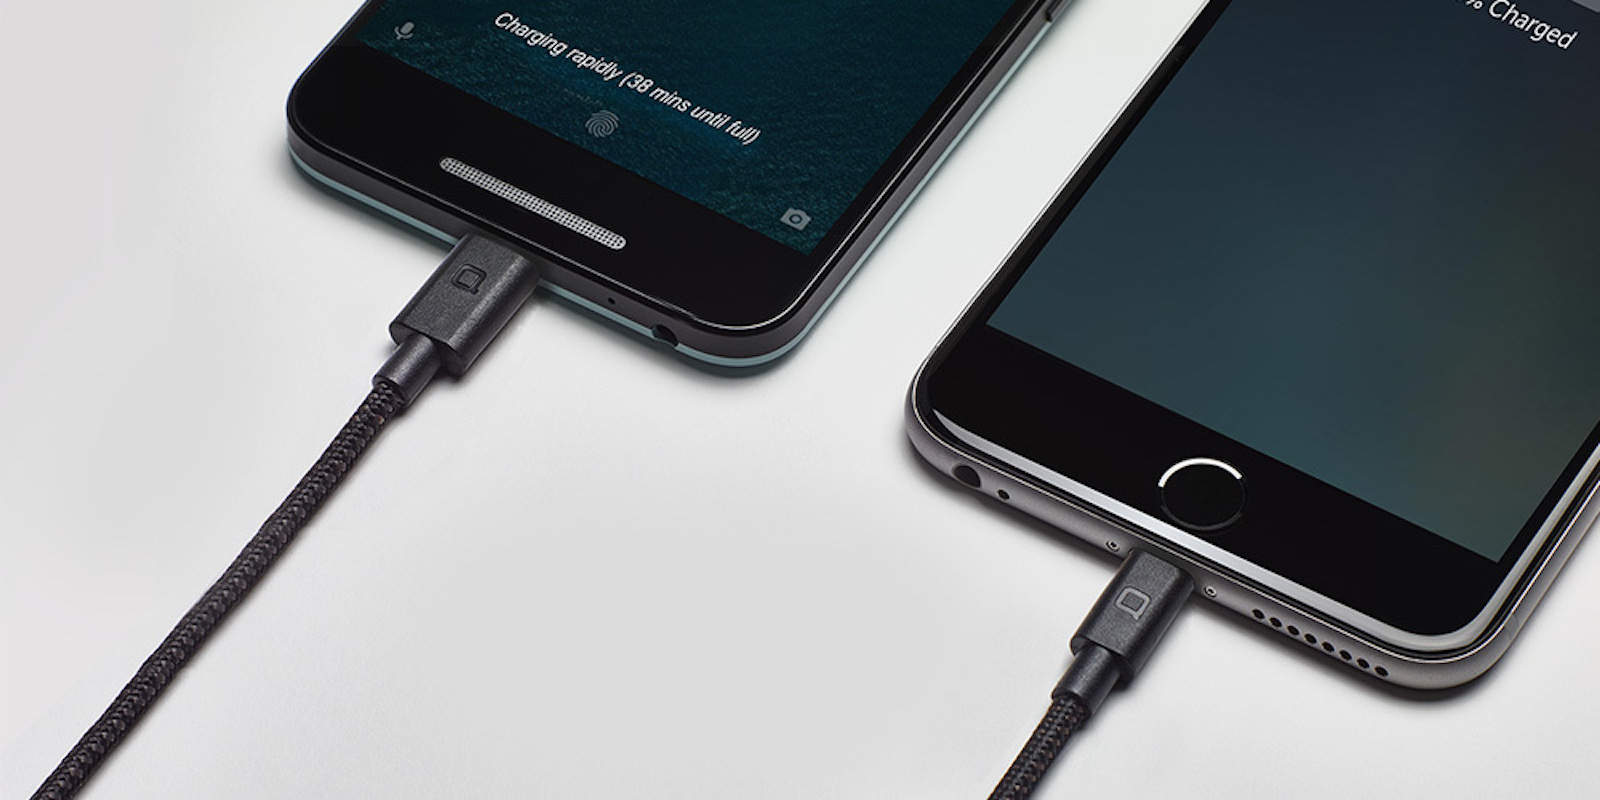 This military-grade kevlar charging cable will stand the test of time